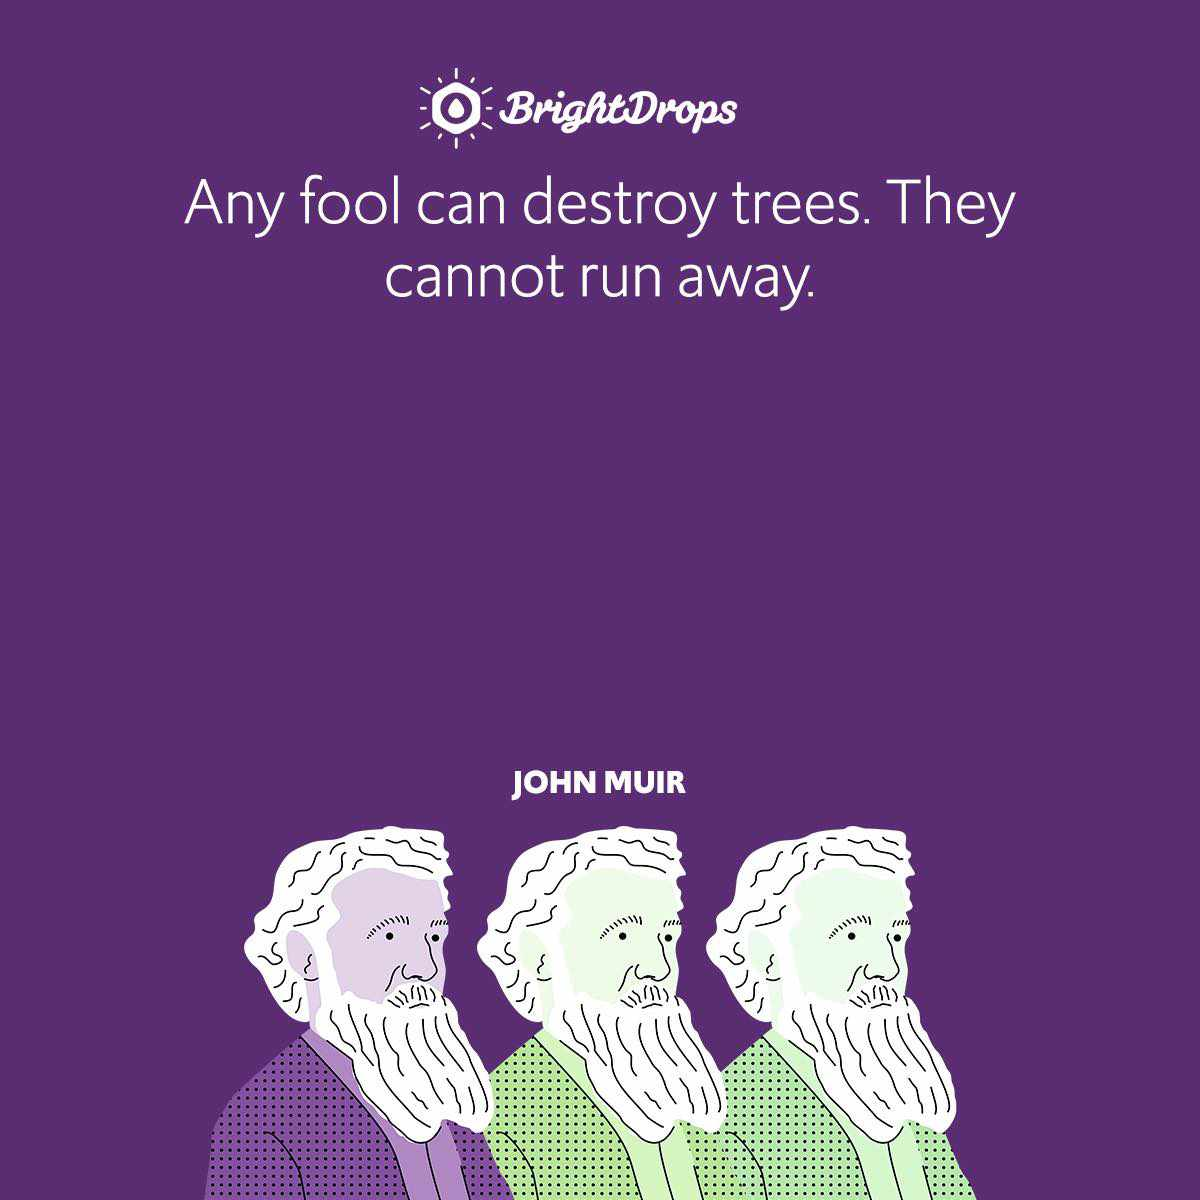 Any fool can destroy trees. They cannot run away.